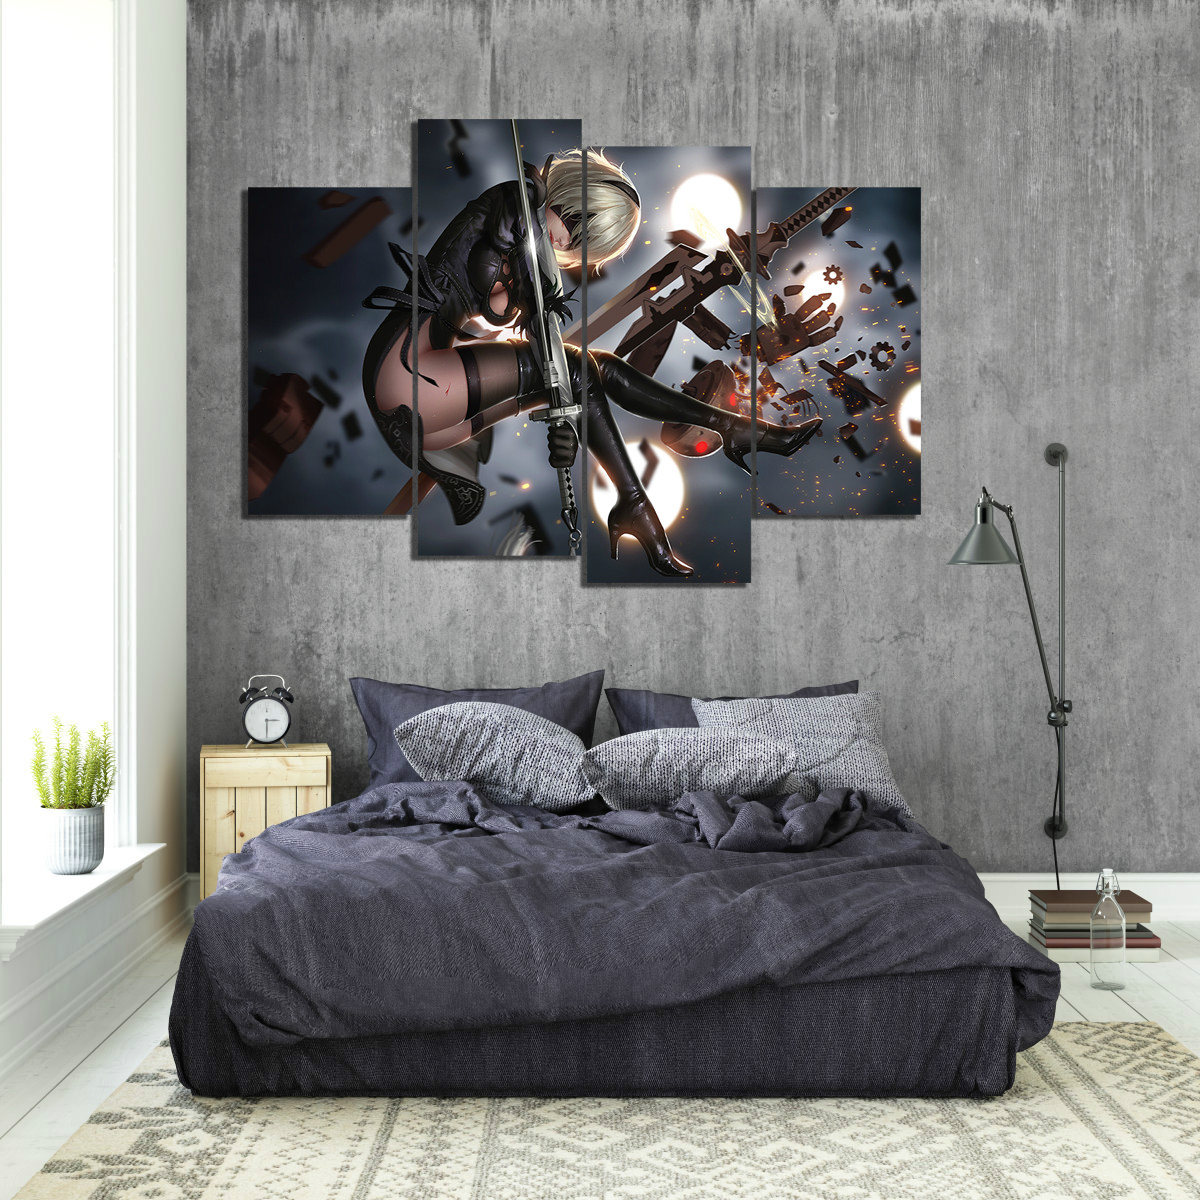 4 Panels HD Anime Girl Pictures Game Poster NieR Automata Paintings Canvas Art for Home Decor